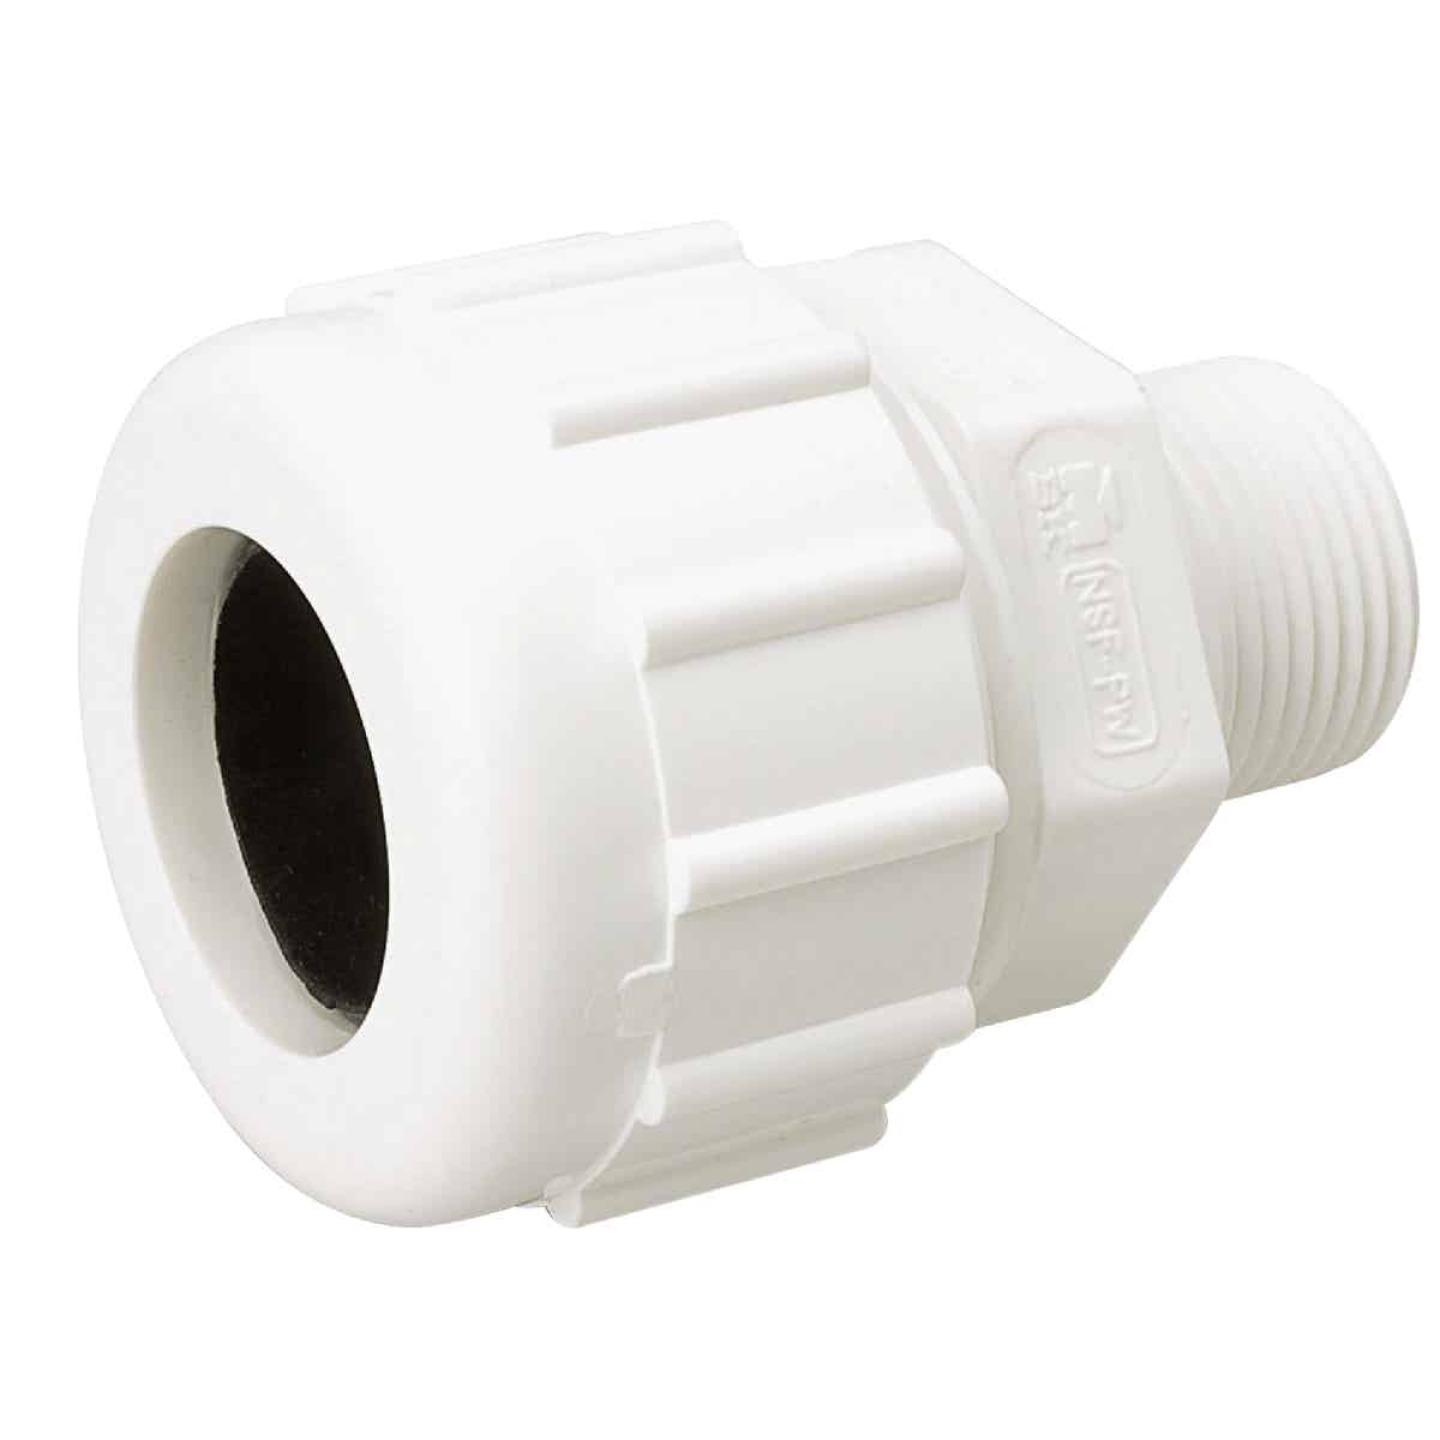 B&K 1/2 In. MIPT Schedule 40 Compression Union PVC Adapter Image 1